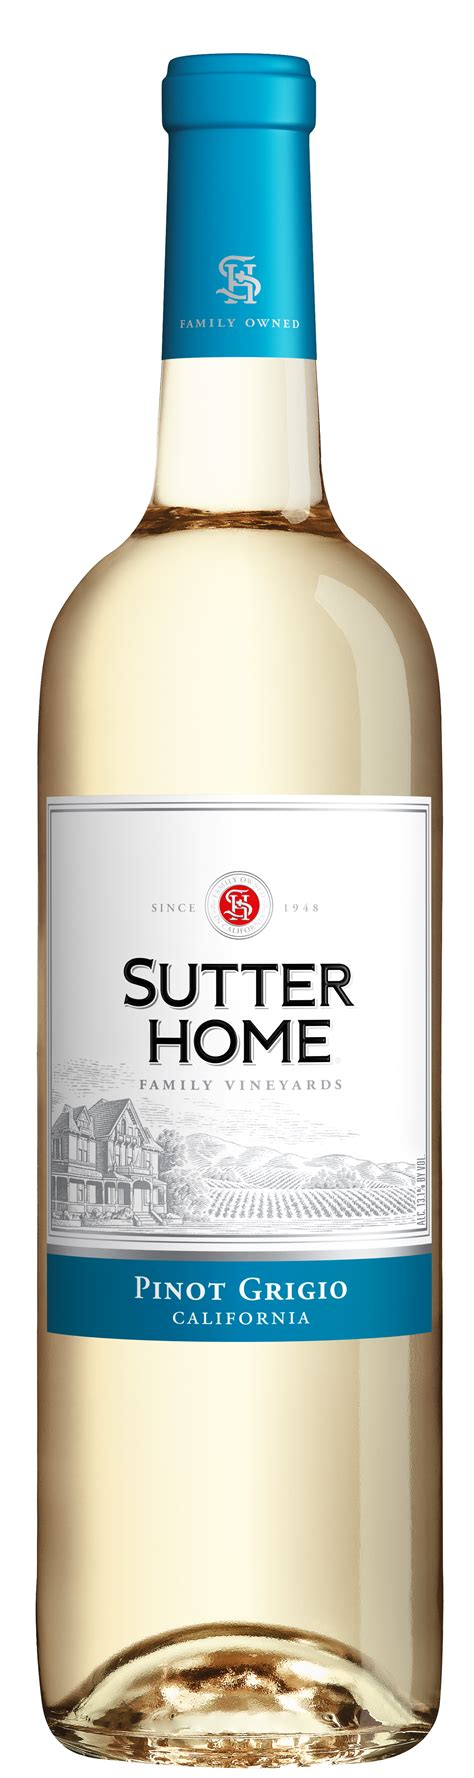 riesling sutter home family vineyards